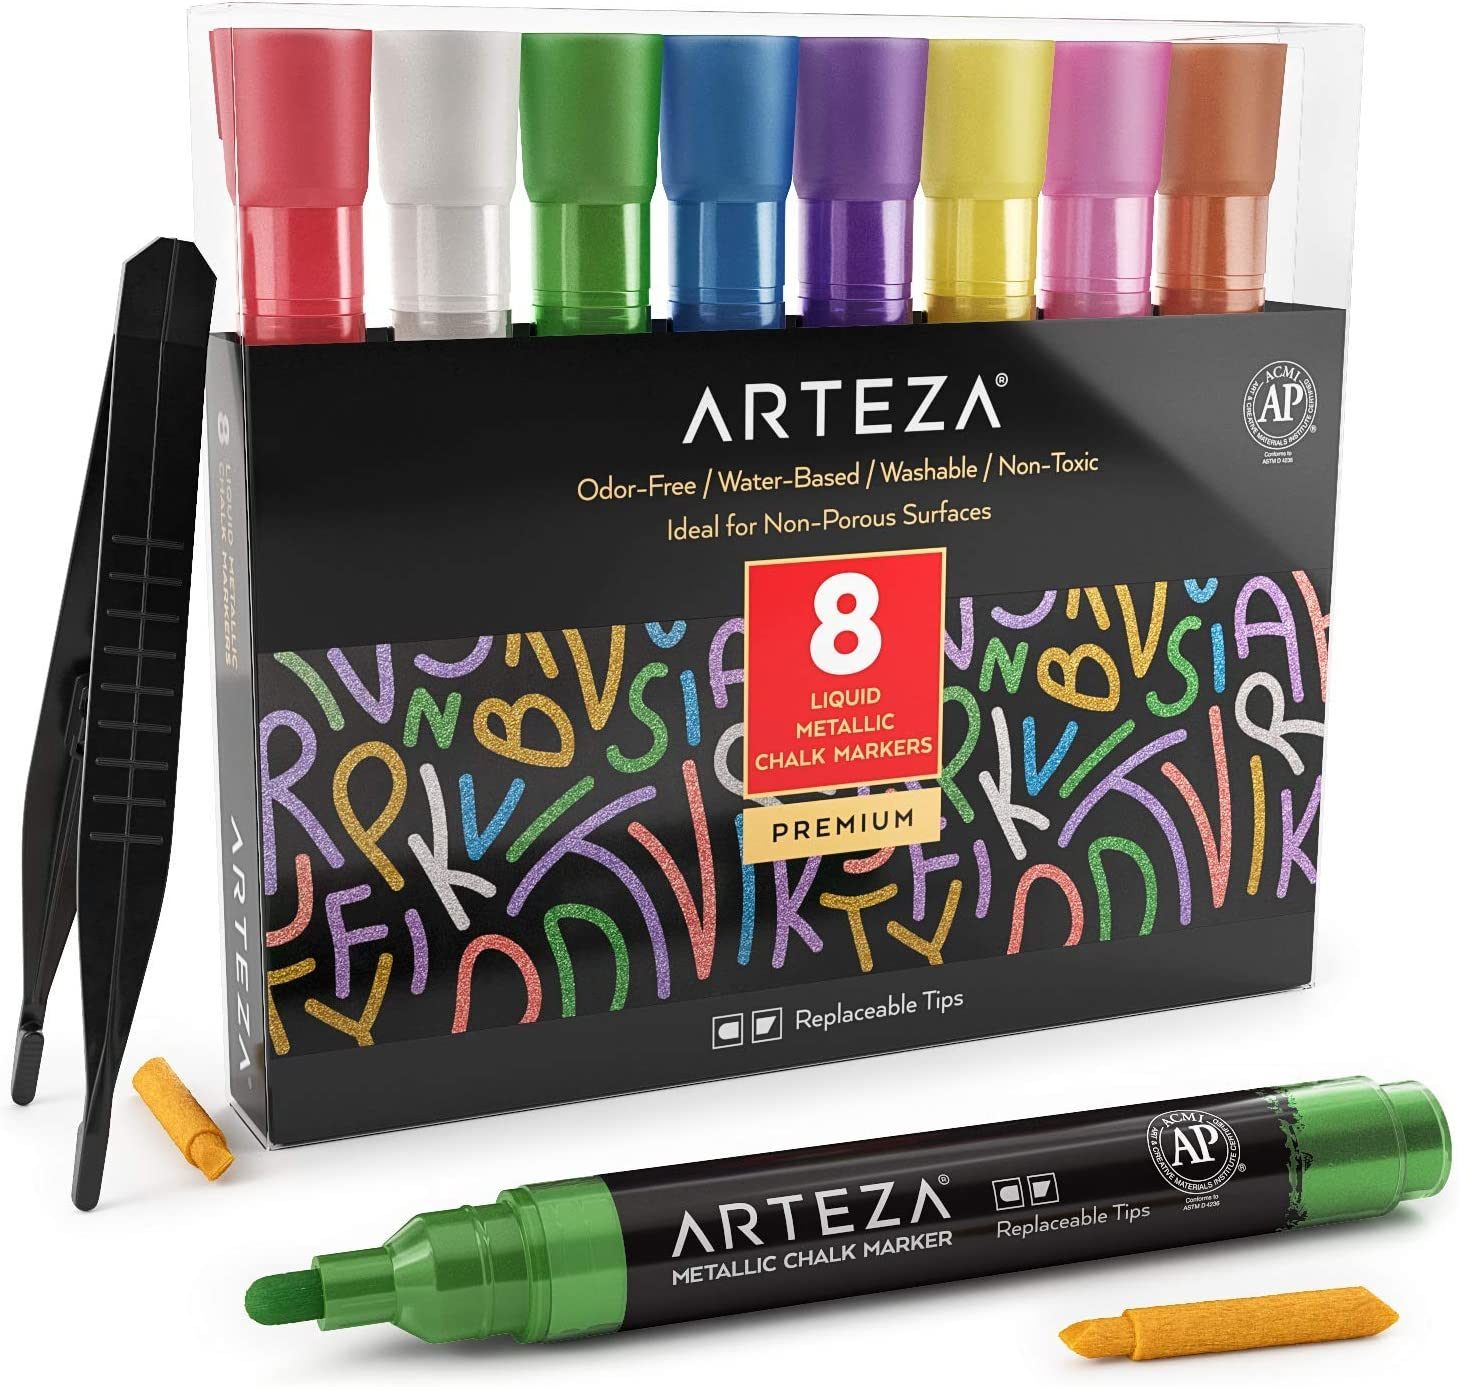 Arteza Liquid Chalk Markers Set of 8 (8 Metallic Colors, 8 Replaceable Chisel Tips, 1 pc Tweezers, 50 Labels, 2 Sticky Stencils) - Washable - Non-Toxic - Odor-Free - Use on Chalkboard, Glass, Mirrors